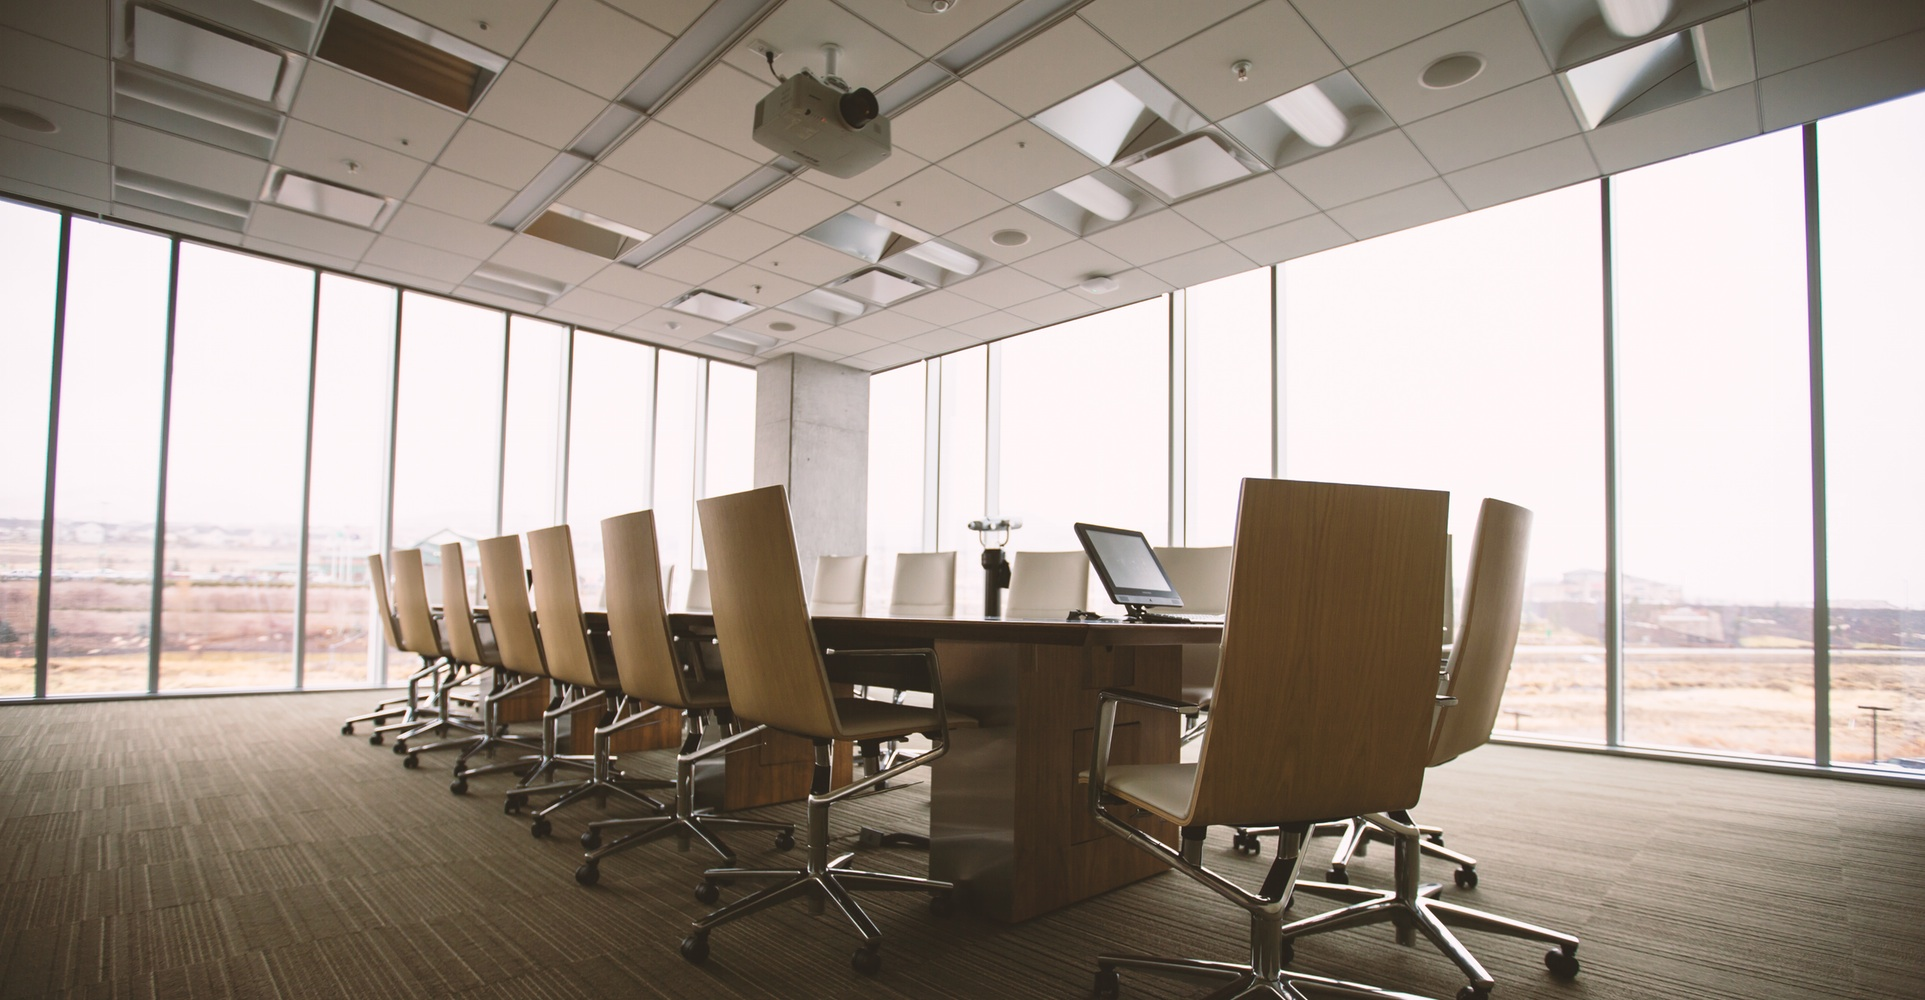 Building An Effective Board Of Directors